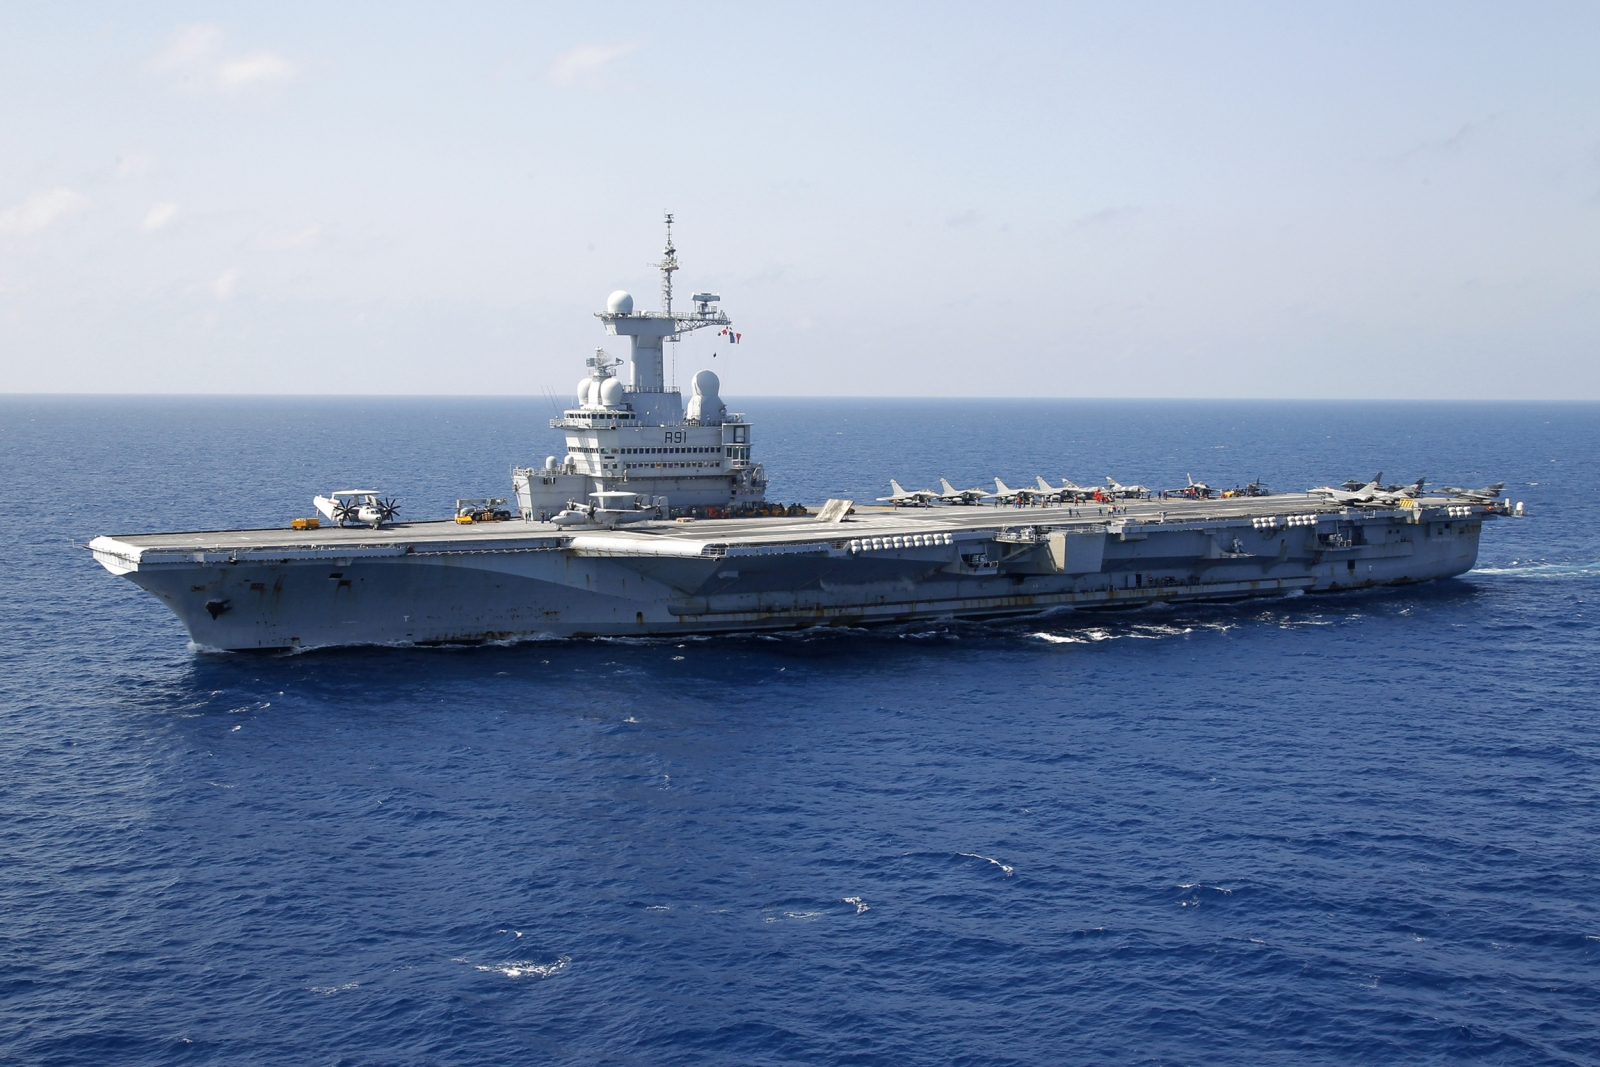 France's Charles de Gaulle aircraft carrier ISIS Charlie Hebdo